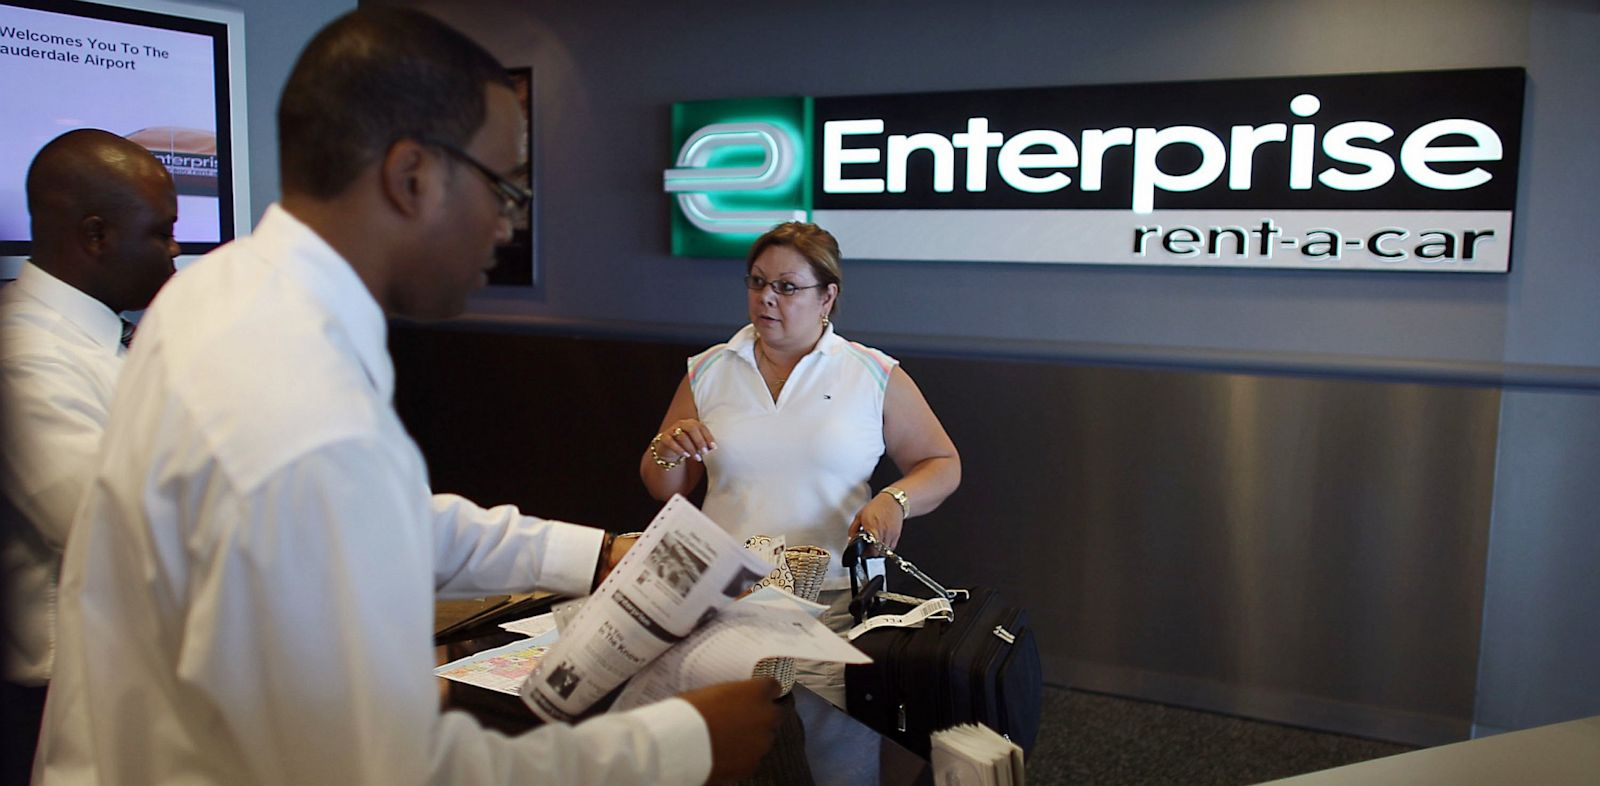 PHOTO: Enterprise rent-a-car